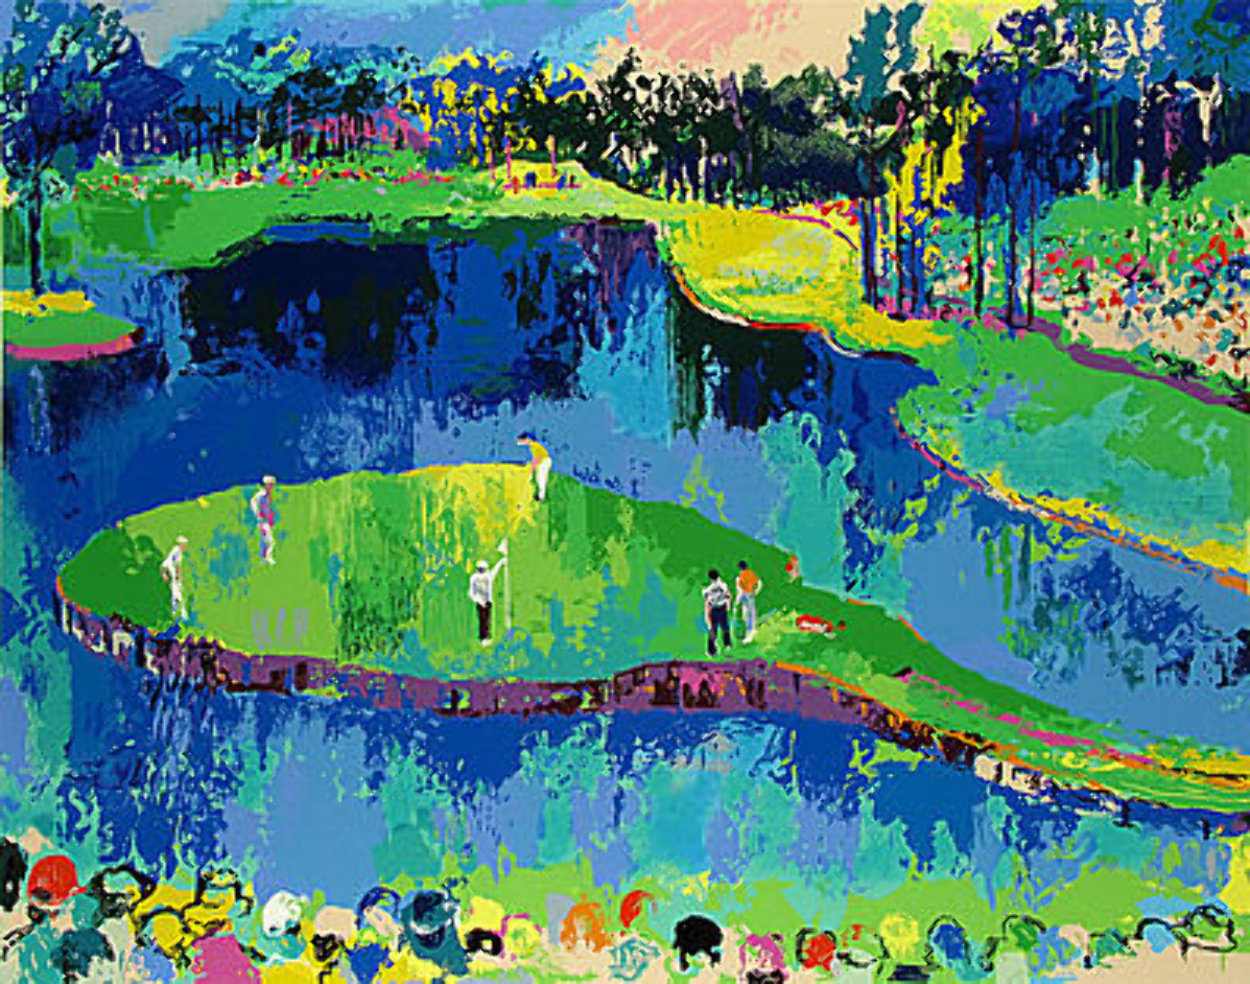 Second Hole At Sawgrass 2001 Limited Edition Print by LeRoy Neiman